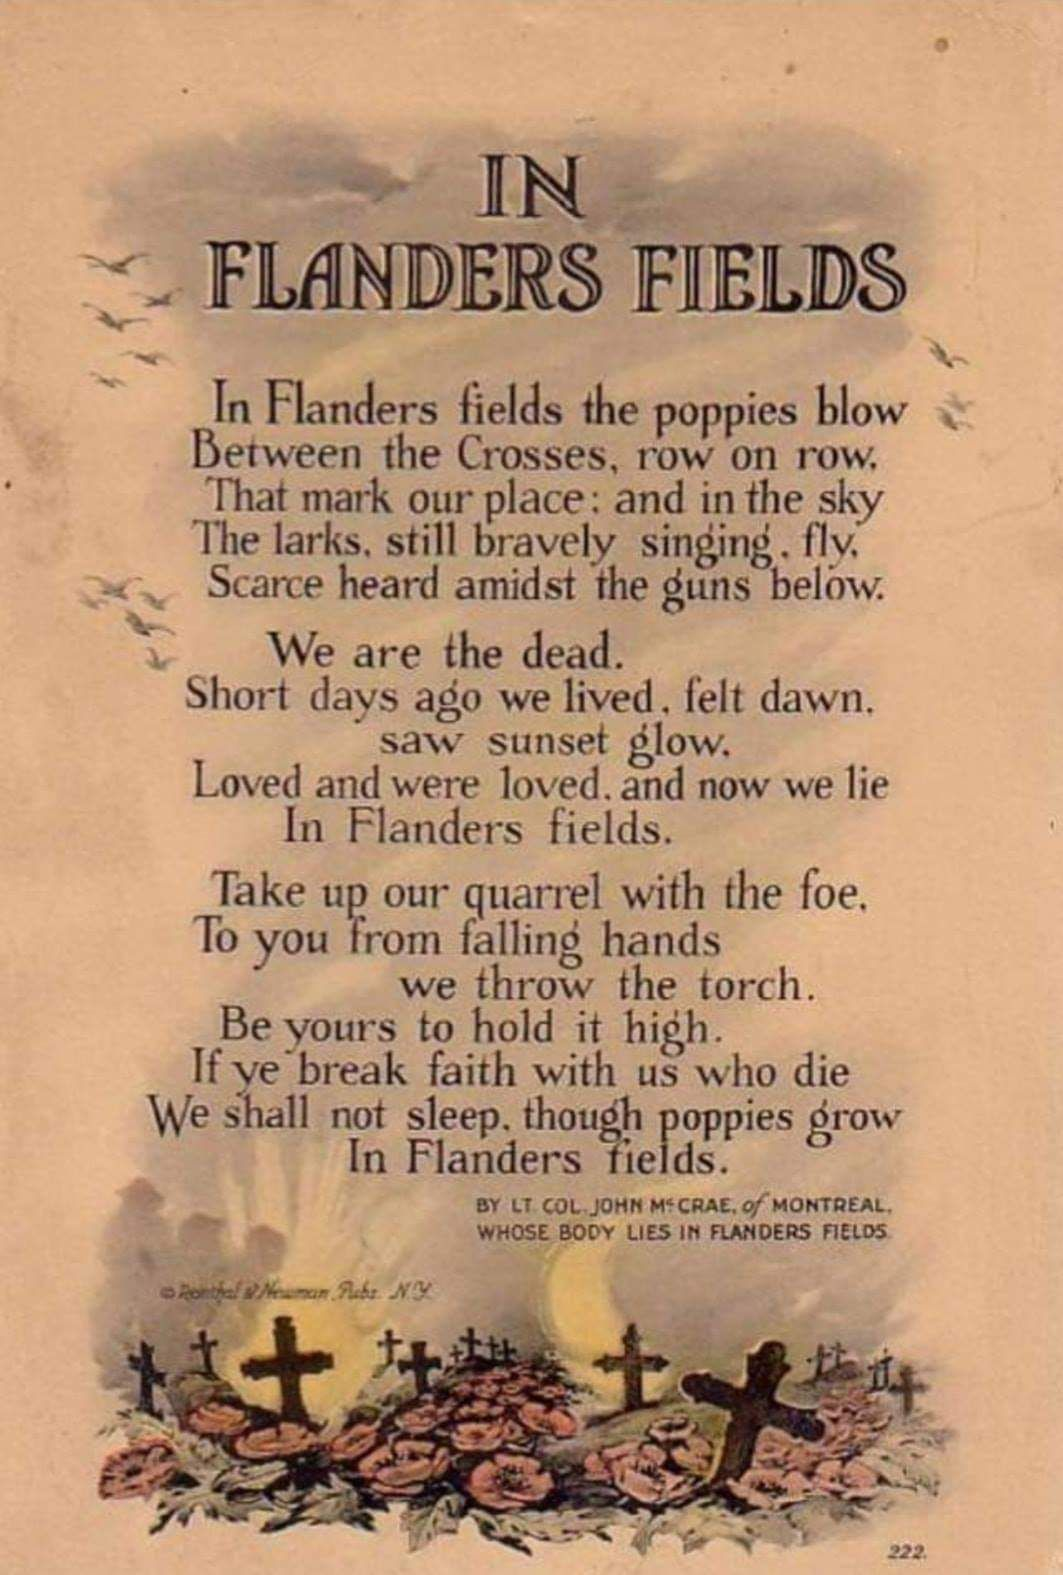 Pin By Chelle Montrond On Food For Thought Remembrance Day History World War One